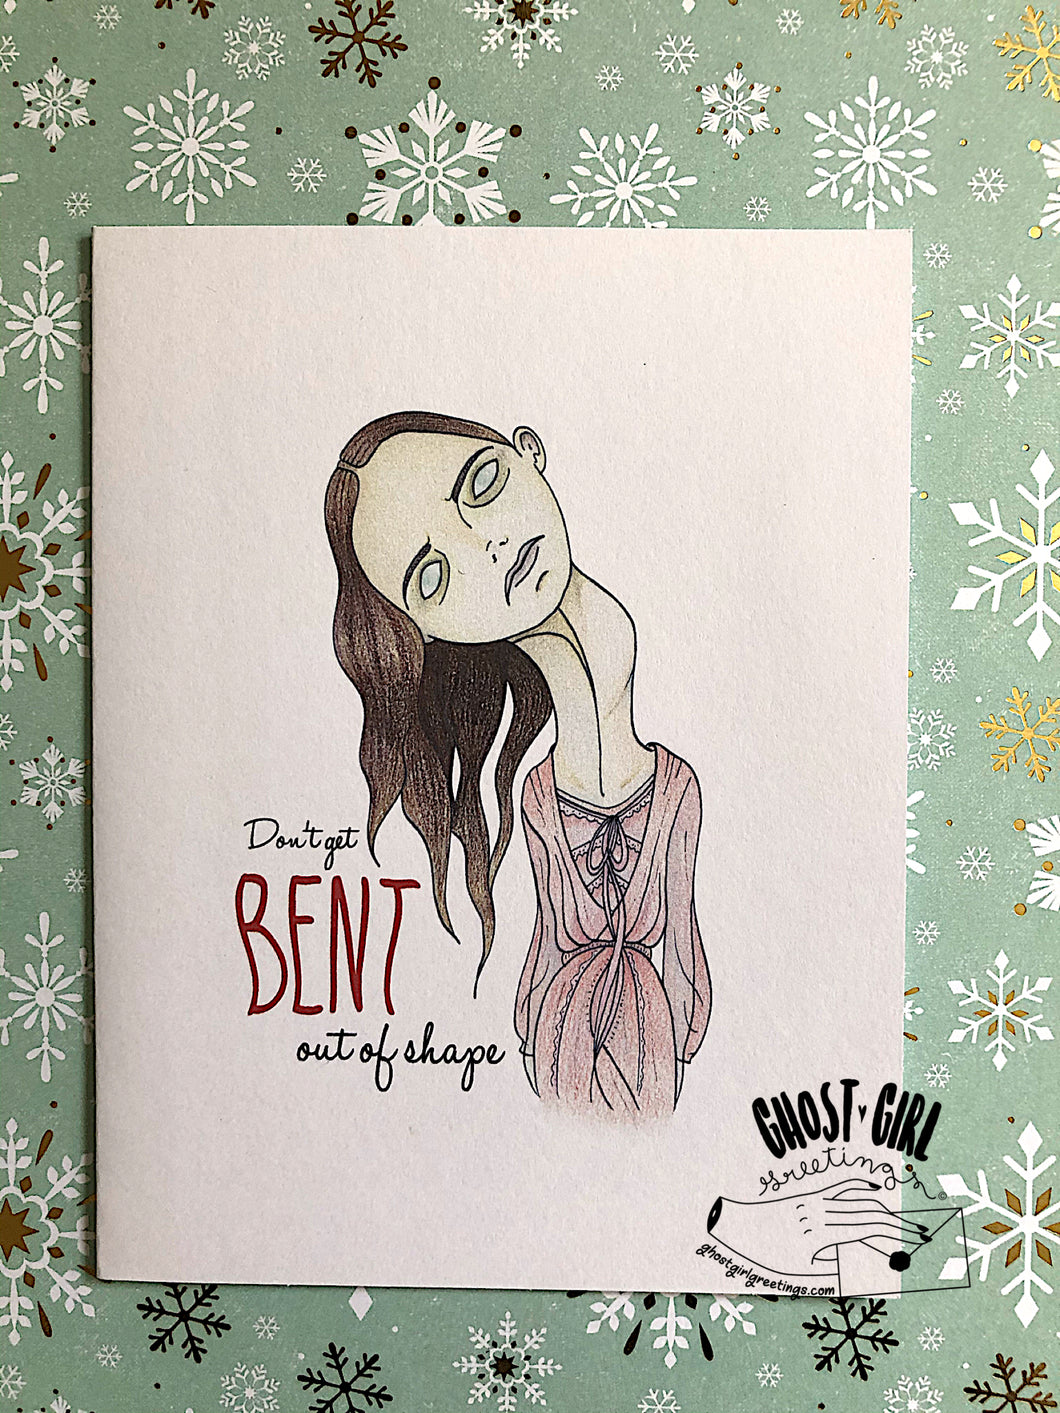 Haunting of Hill House, Bent Neck Lady, Horror Birthday Cards